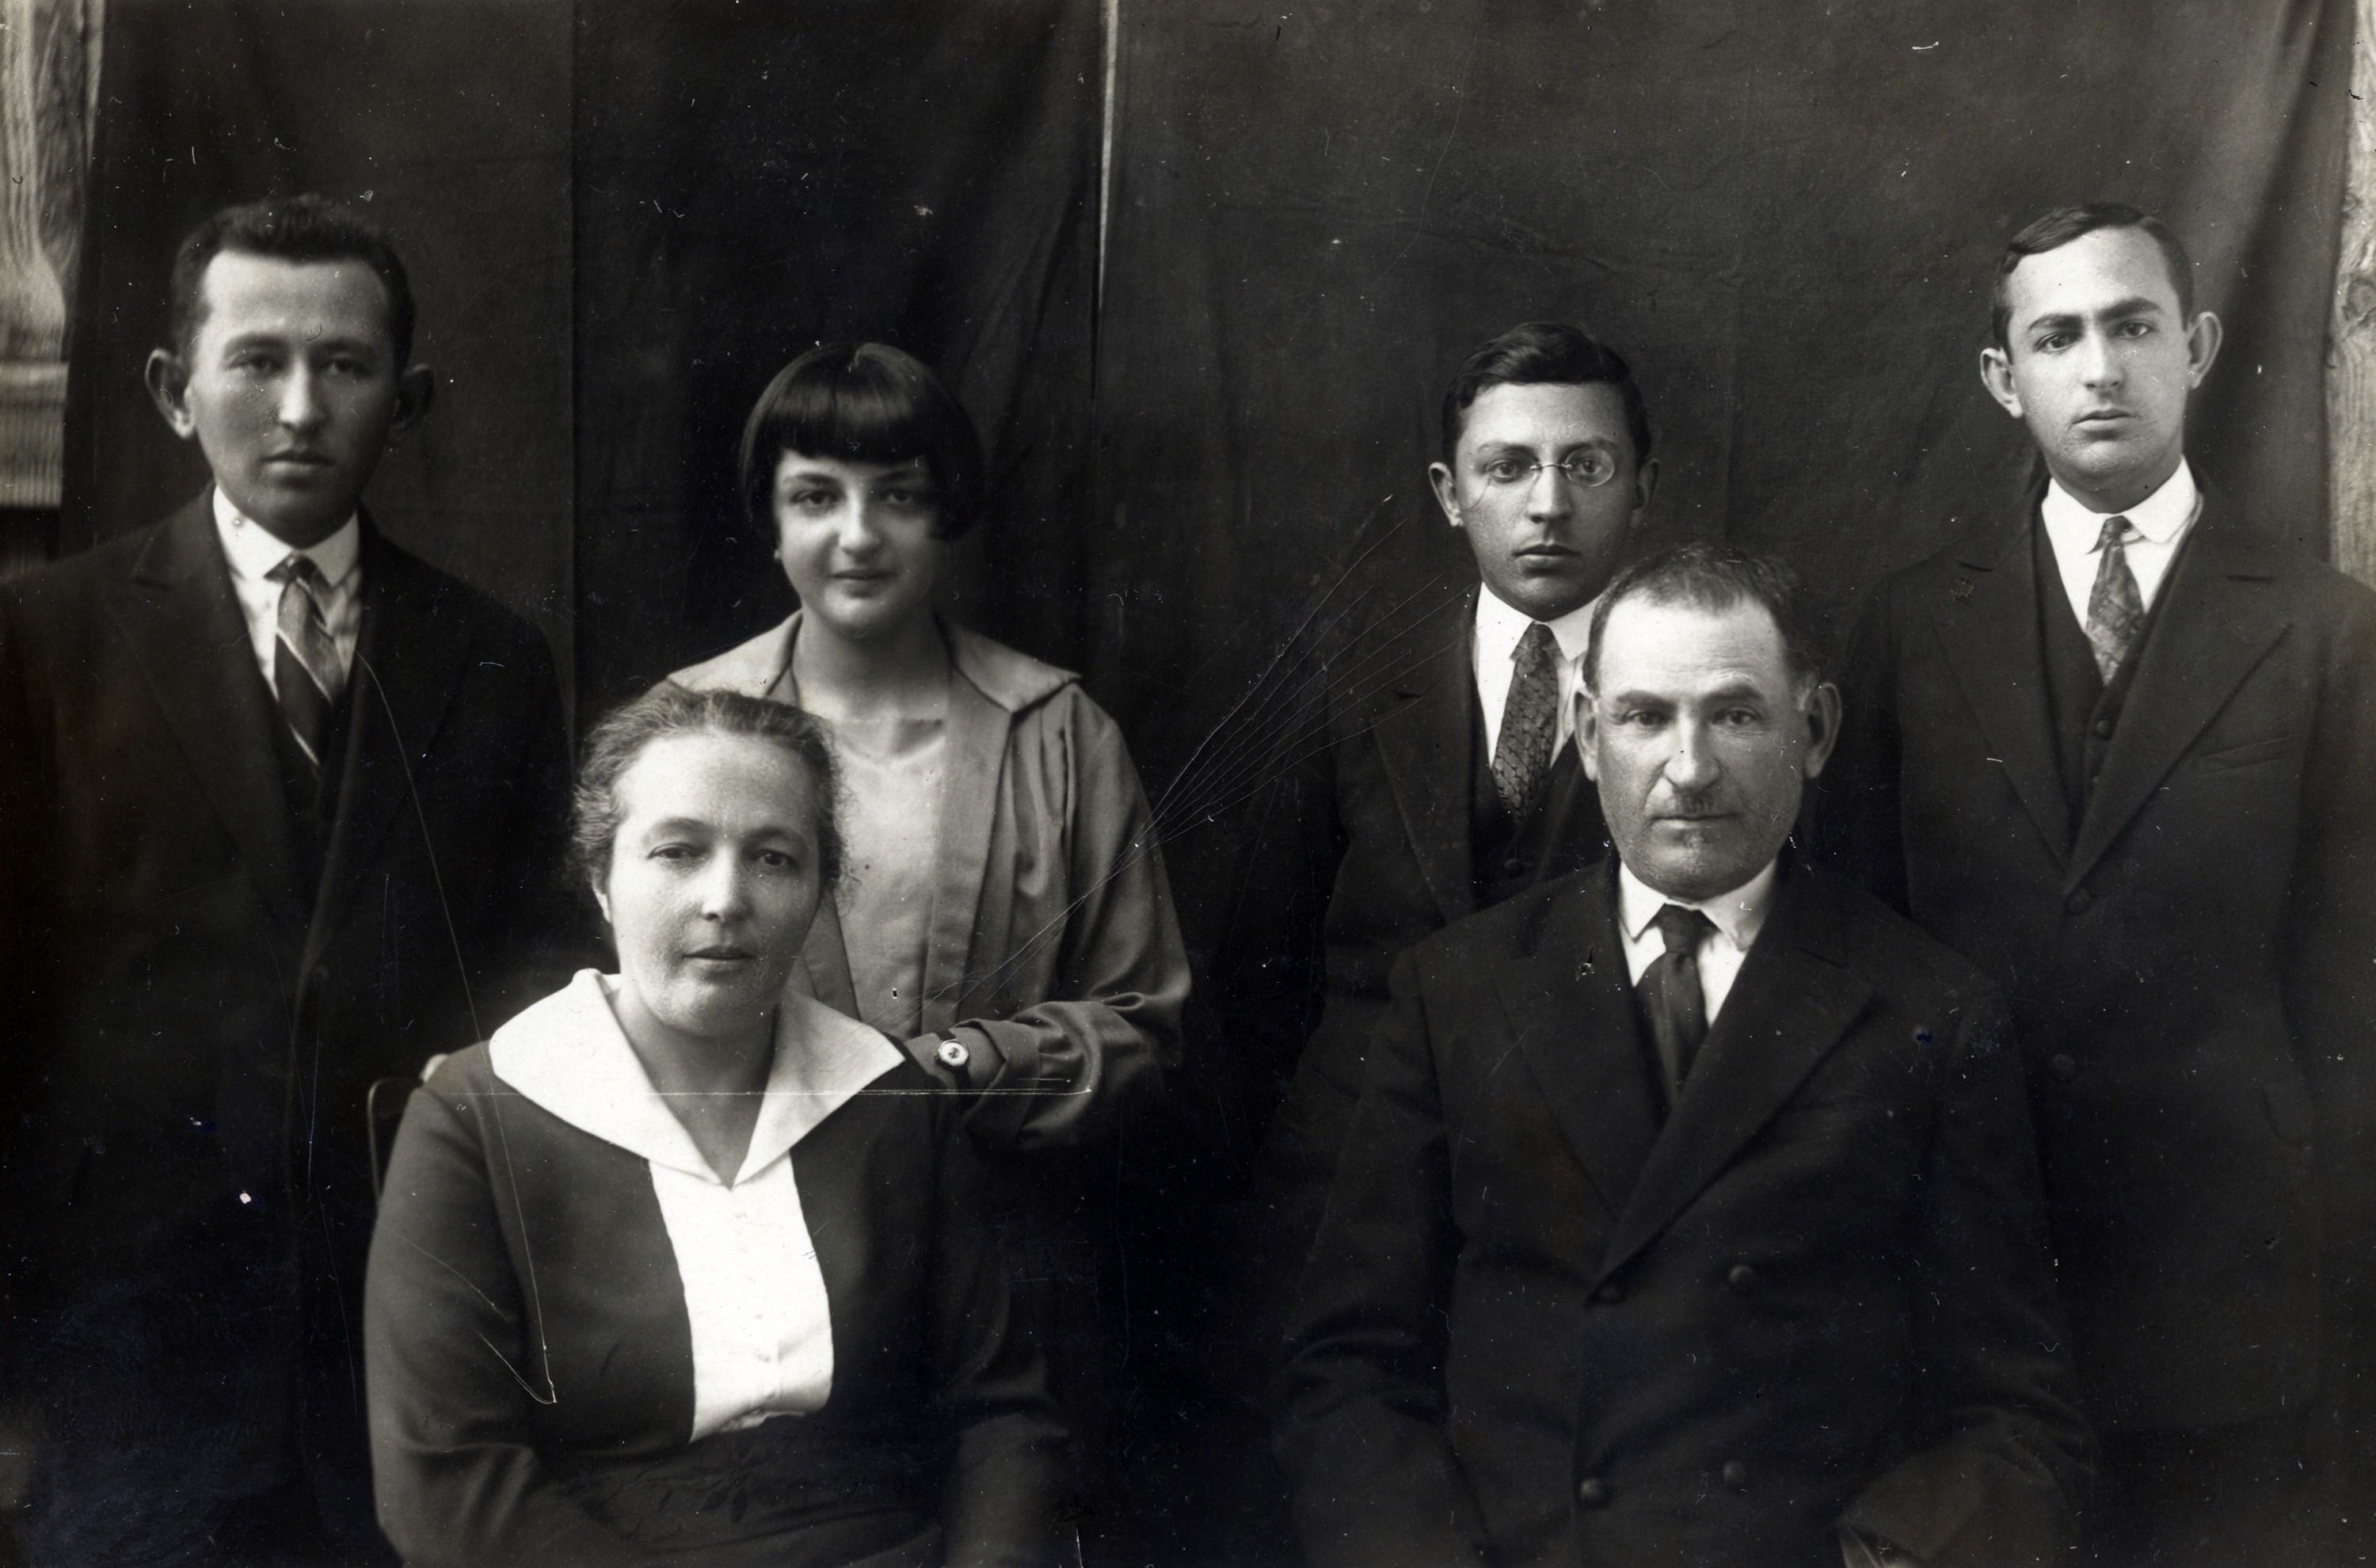 Studio portrait of the Ridnik family.  Back row left to right: Pesach, Dina, Leon and Yaakov (Jankl) Ridnik. Front row left to right: Golda (nee Katz) Ridnik and Alok (Eliyahu) Ridnik.